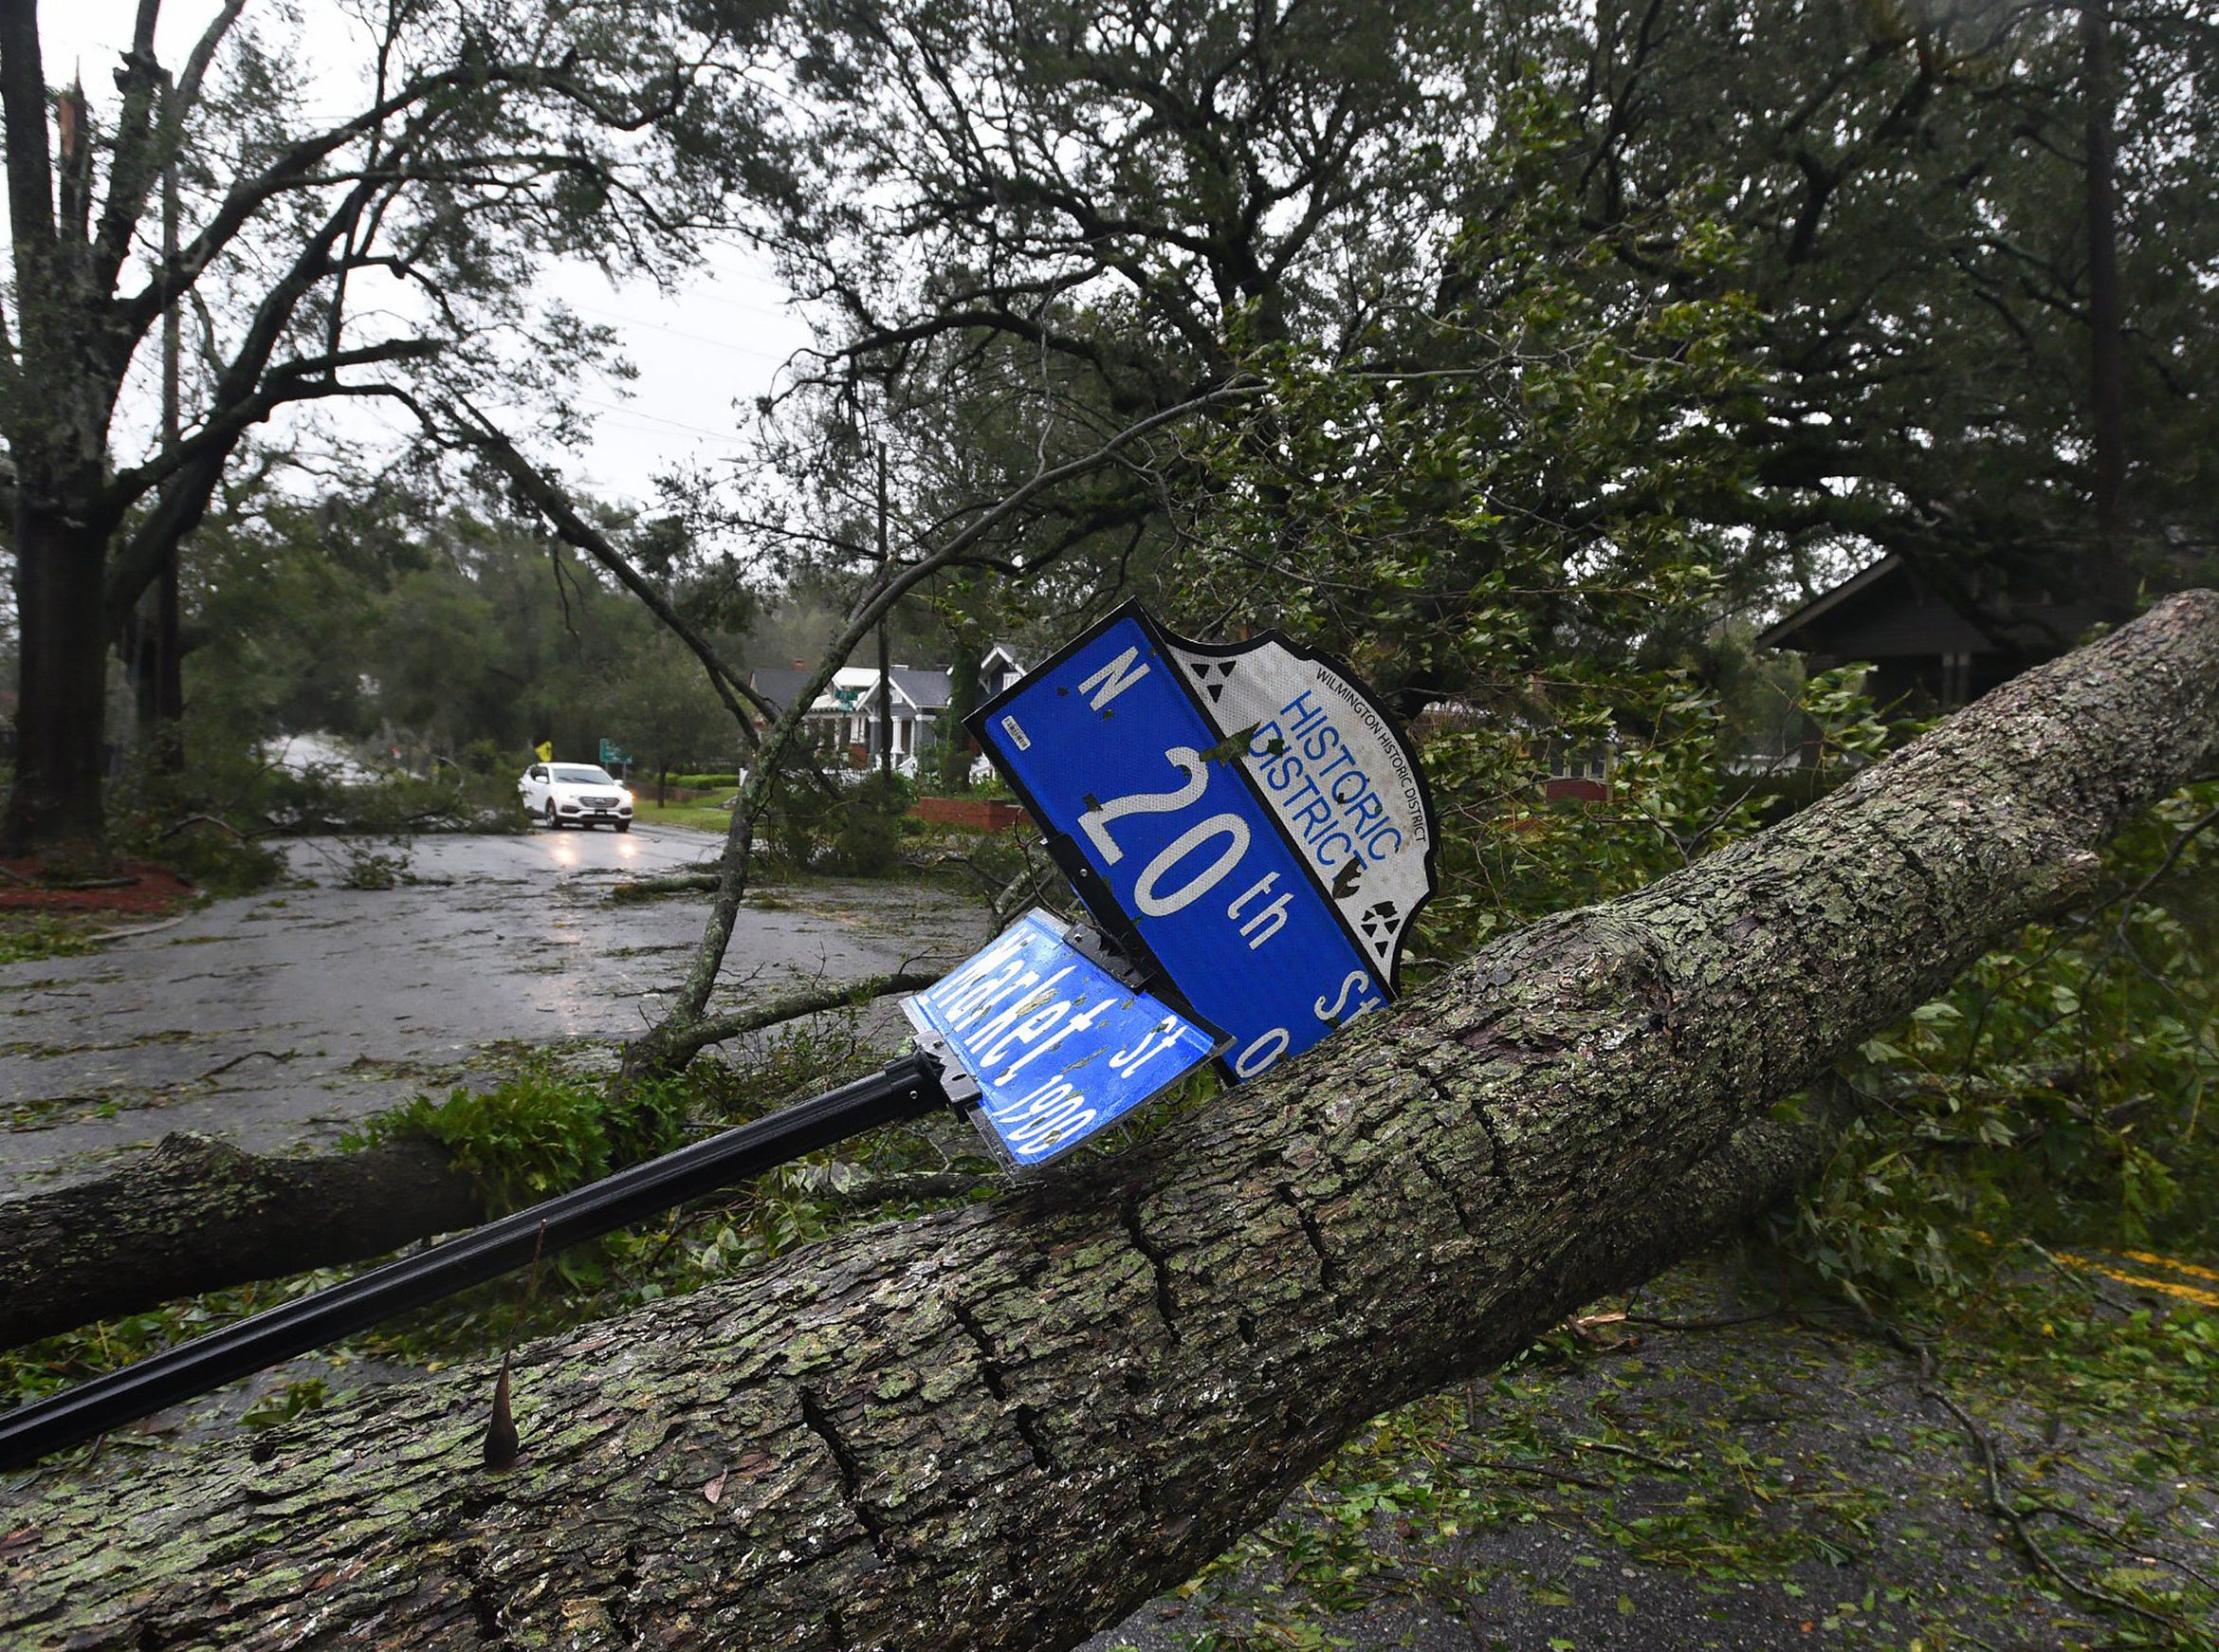 Dozens of downed trees block Market Street in the Historic District of Wilmington, N.C. as Hurricane Florence made landfall Friday Sept. 14, 2018.  (Chuck Liddy/The News & Observer/TNS)